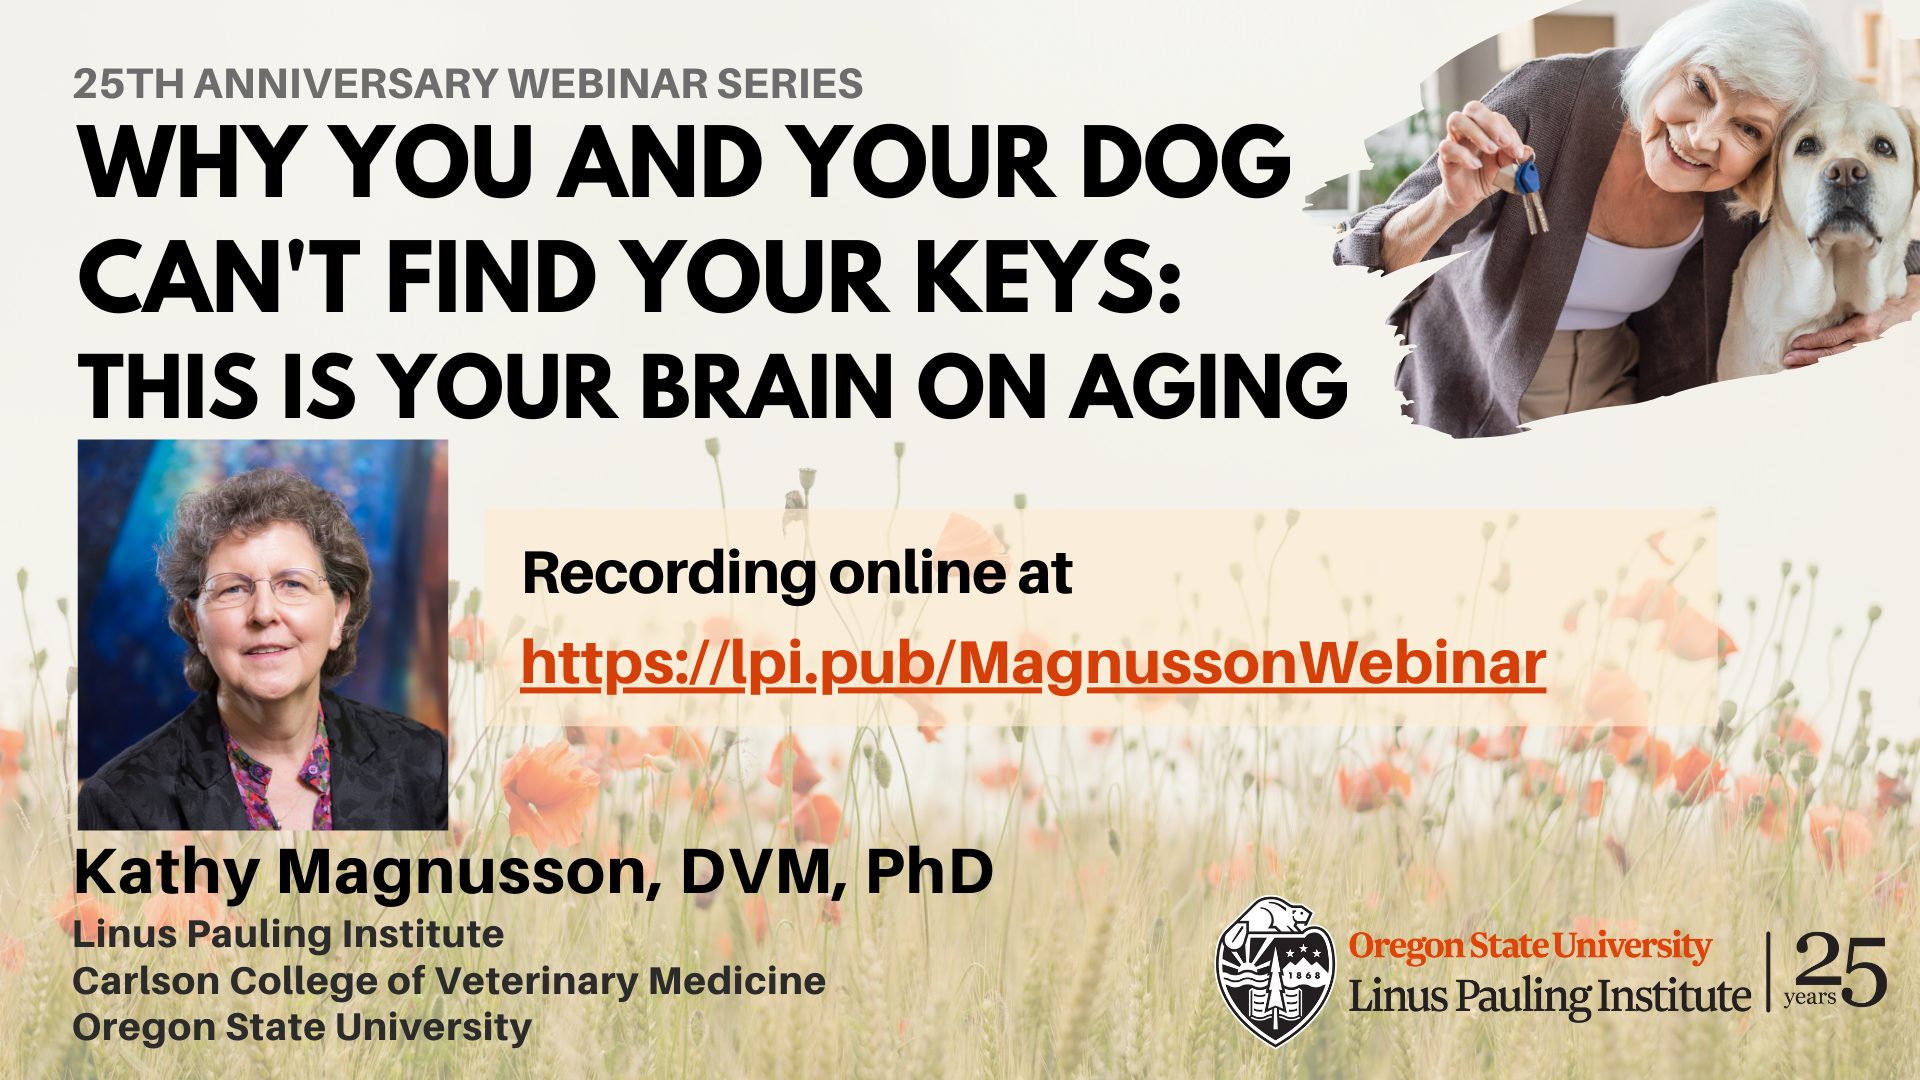 Magnusson Webinar - Now On YouTube